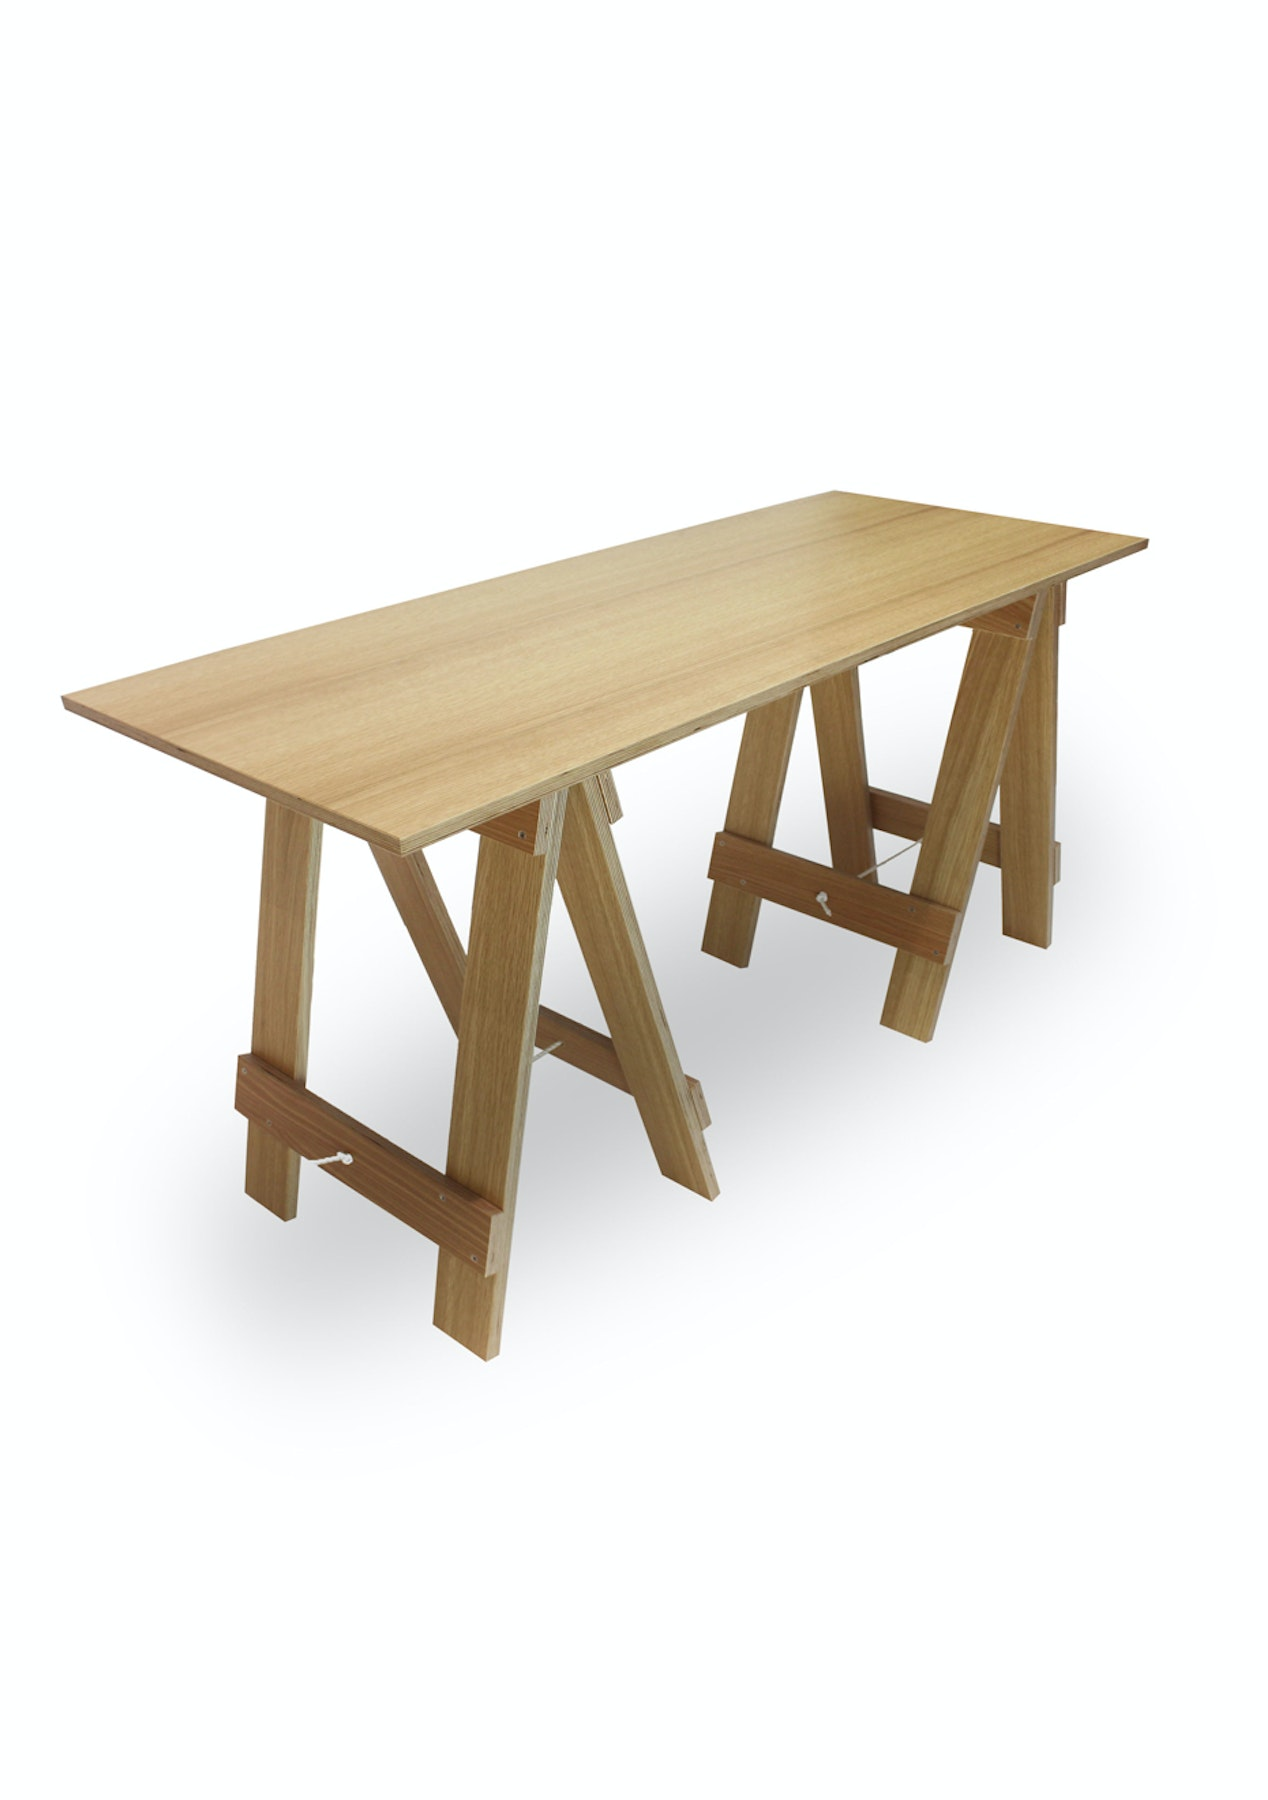 Mood Store  Trestle Desk  Clear Pine